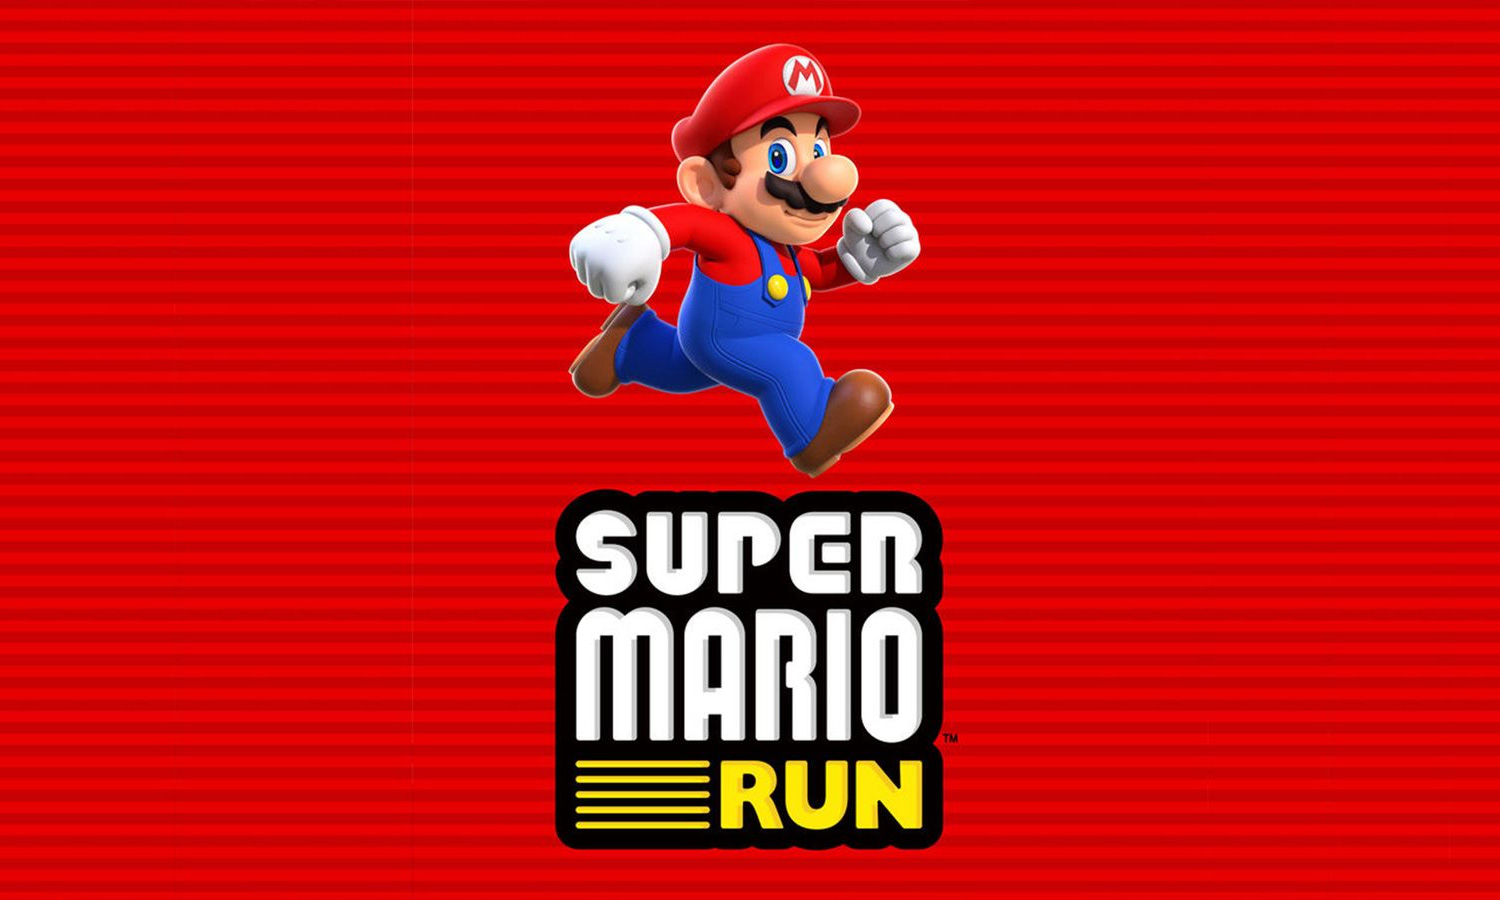 Super Mario Run: 15 Tips to Level Up | Tom's Guide